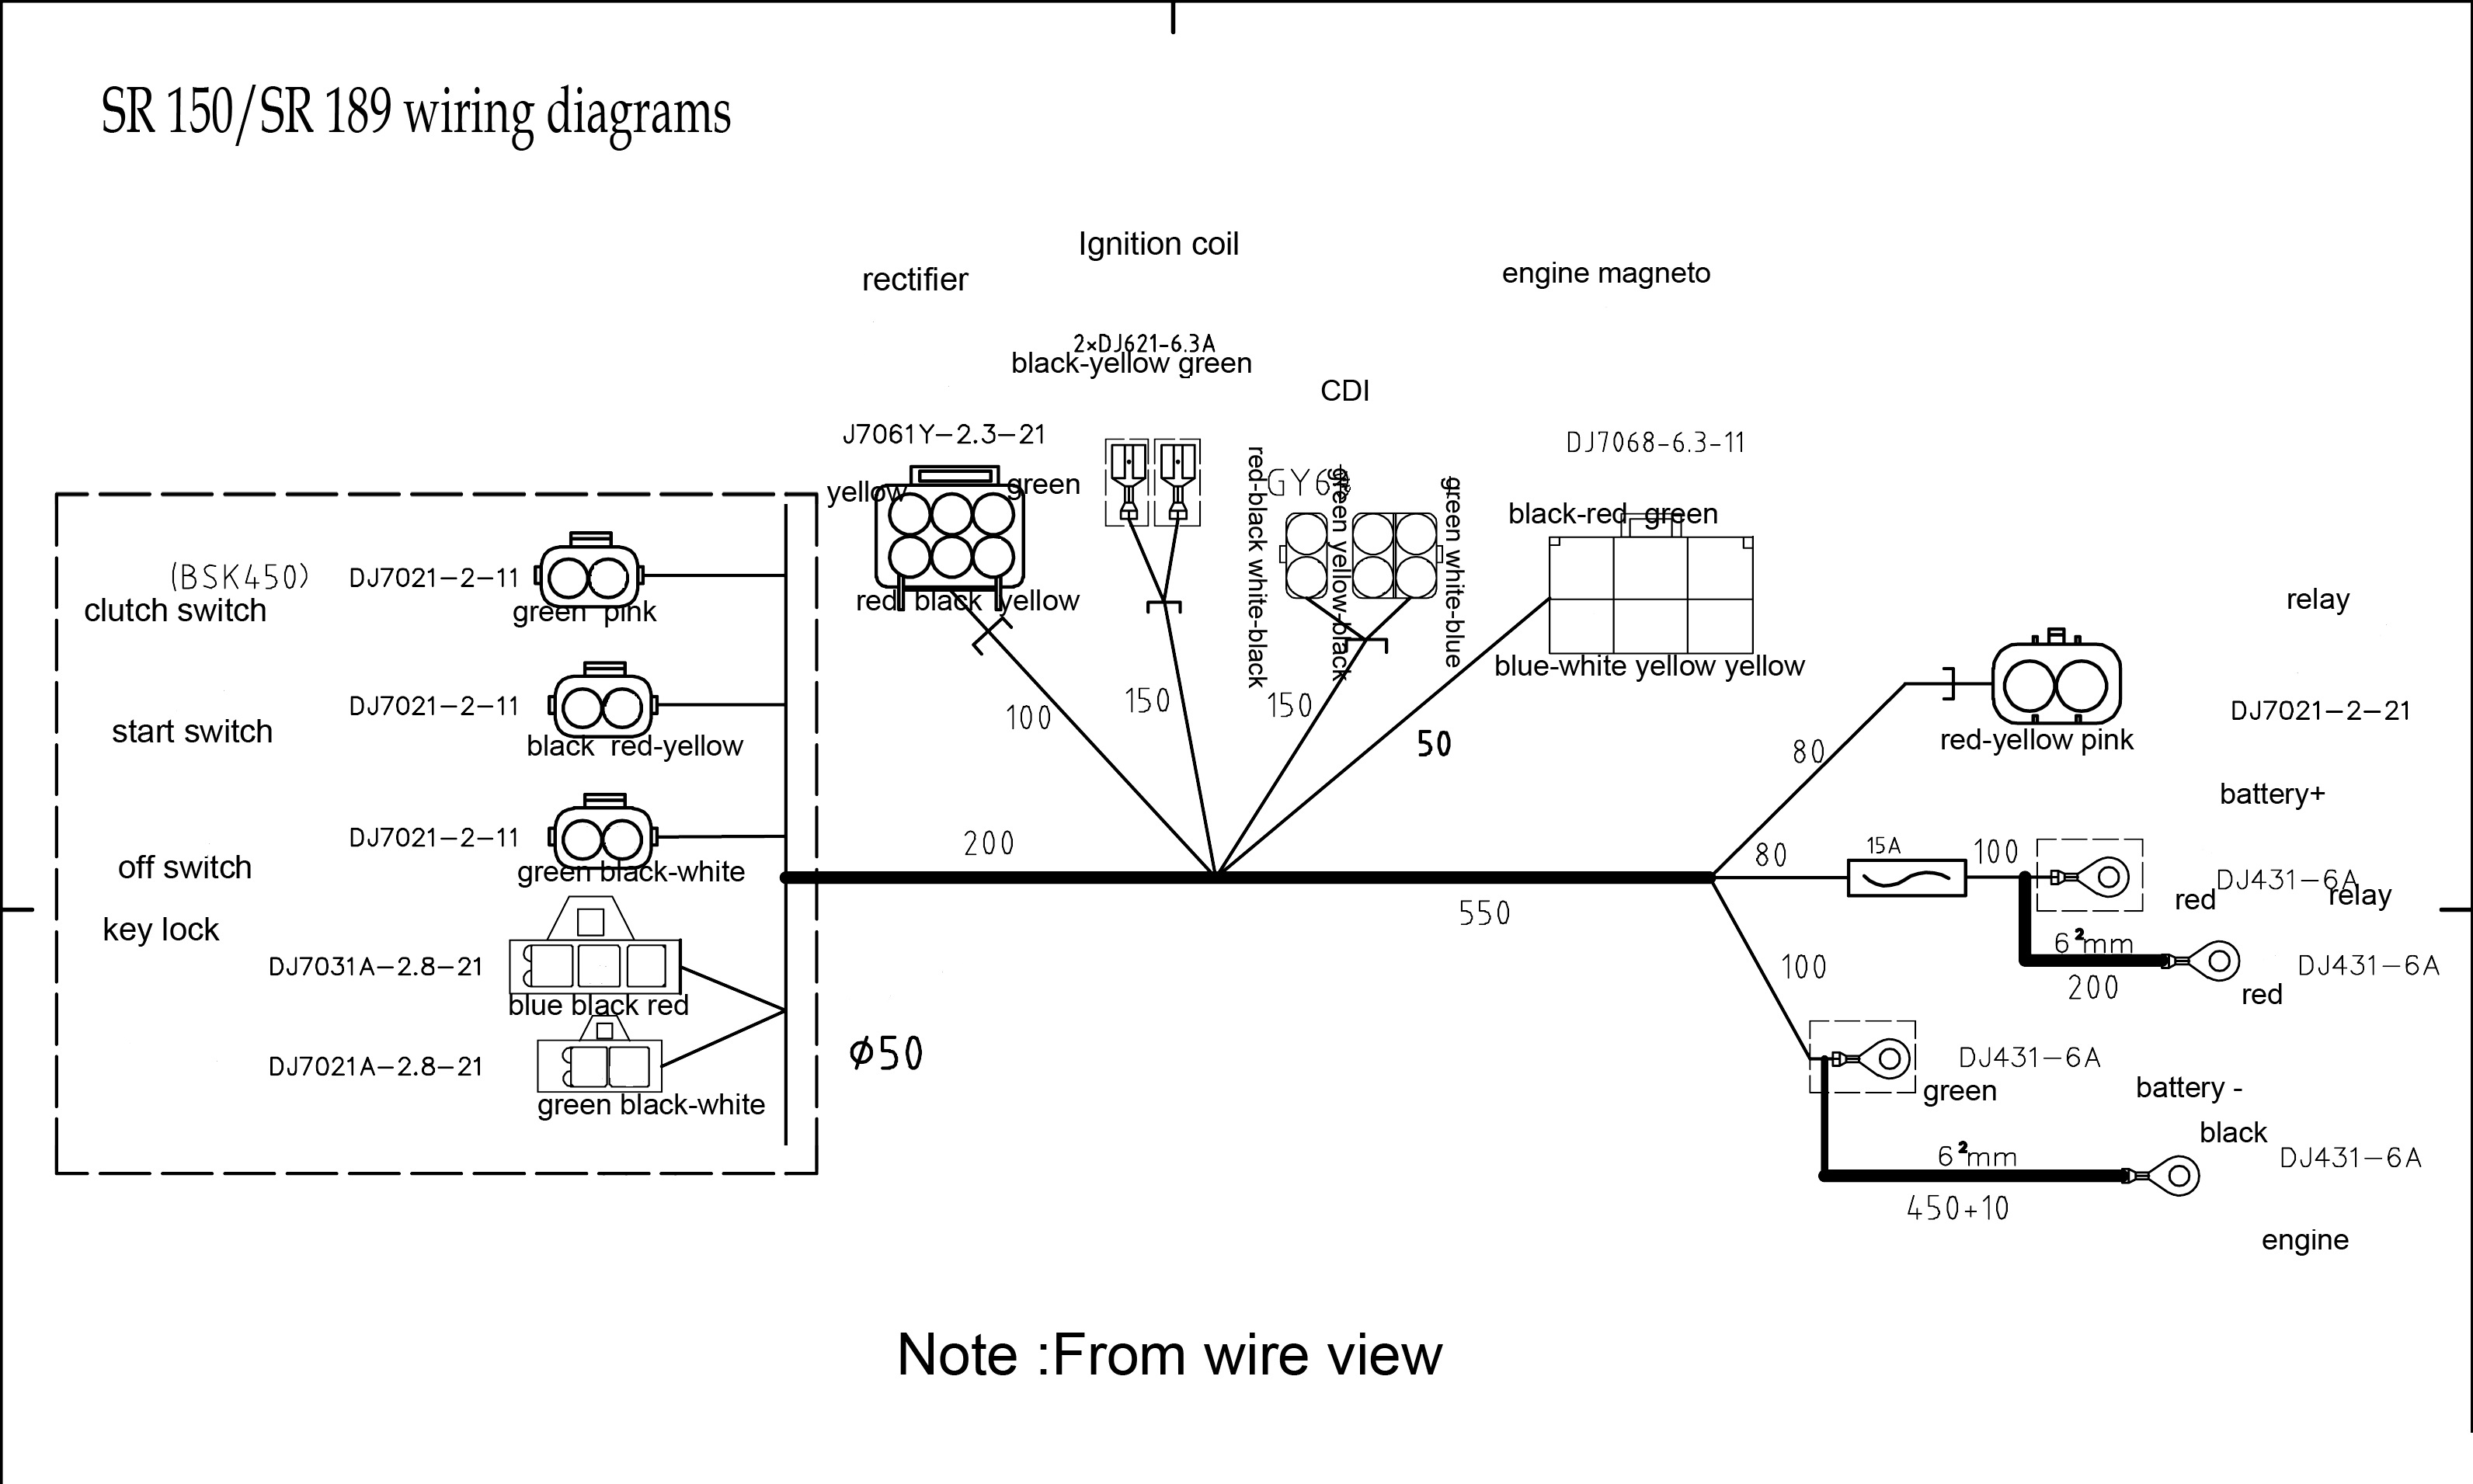 wire diagram rh ssrmotorsports com 125Cc Engine Dirt Bike Engine